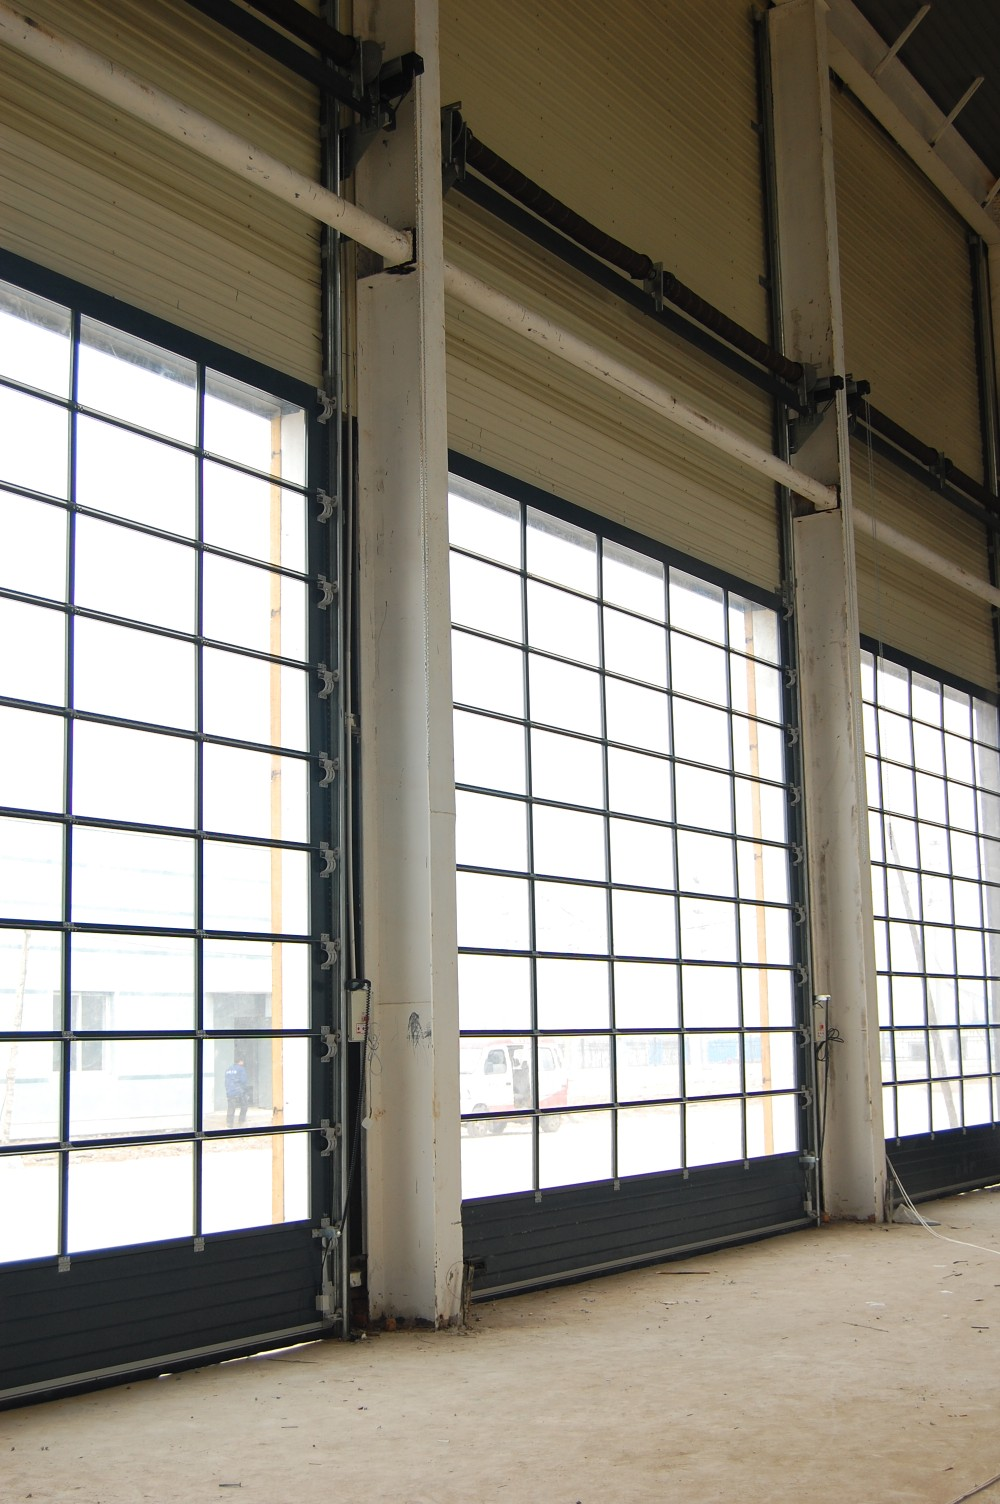 Transparent Plexiglass Garage Doors Buy Plexiglass